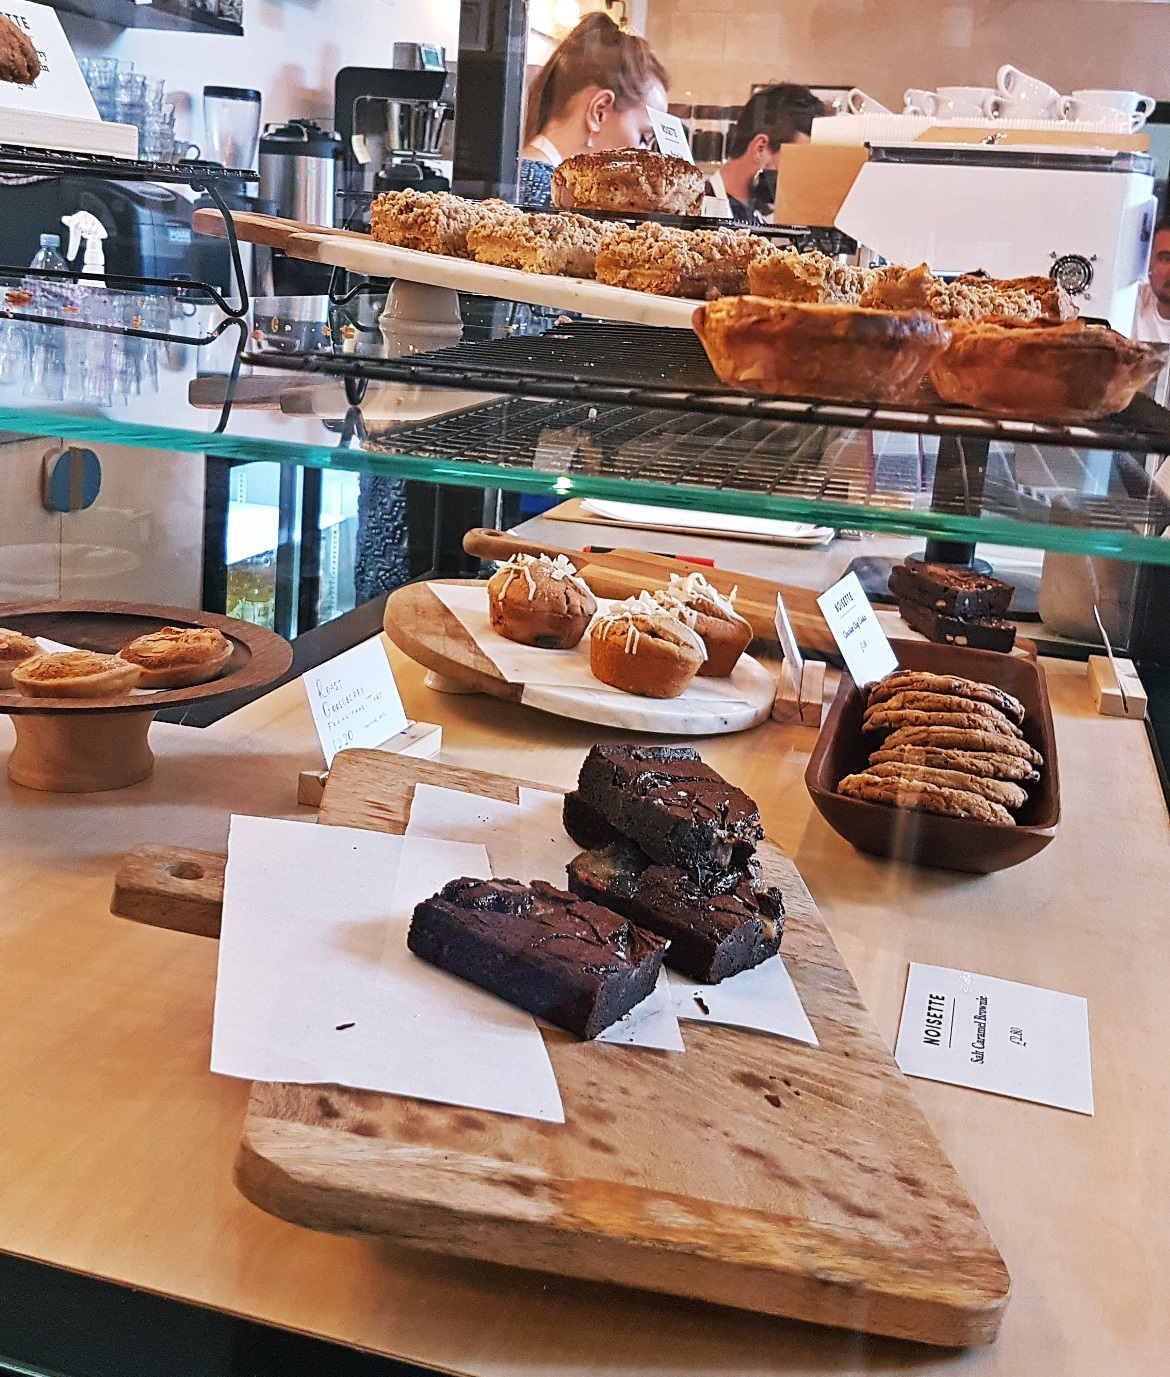 Fresh Noisette cakes - Review of North Star Coffee Shop by BeckyBecky Blogs